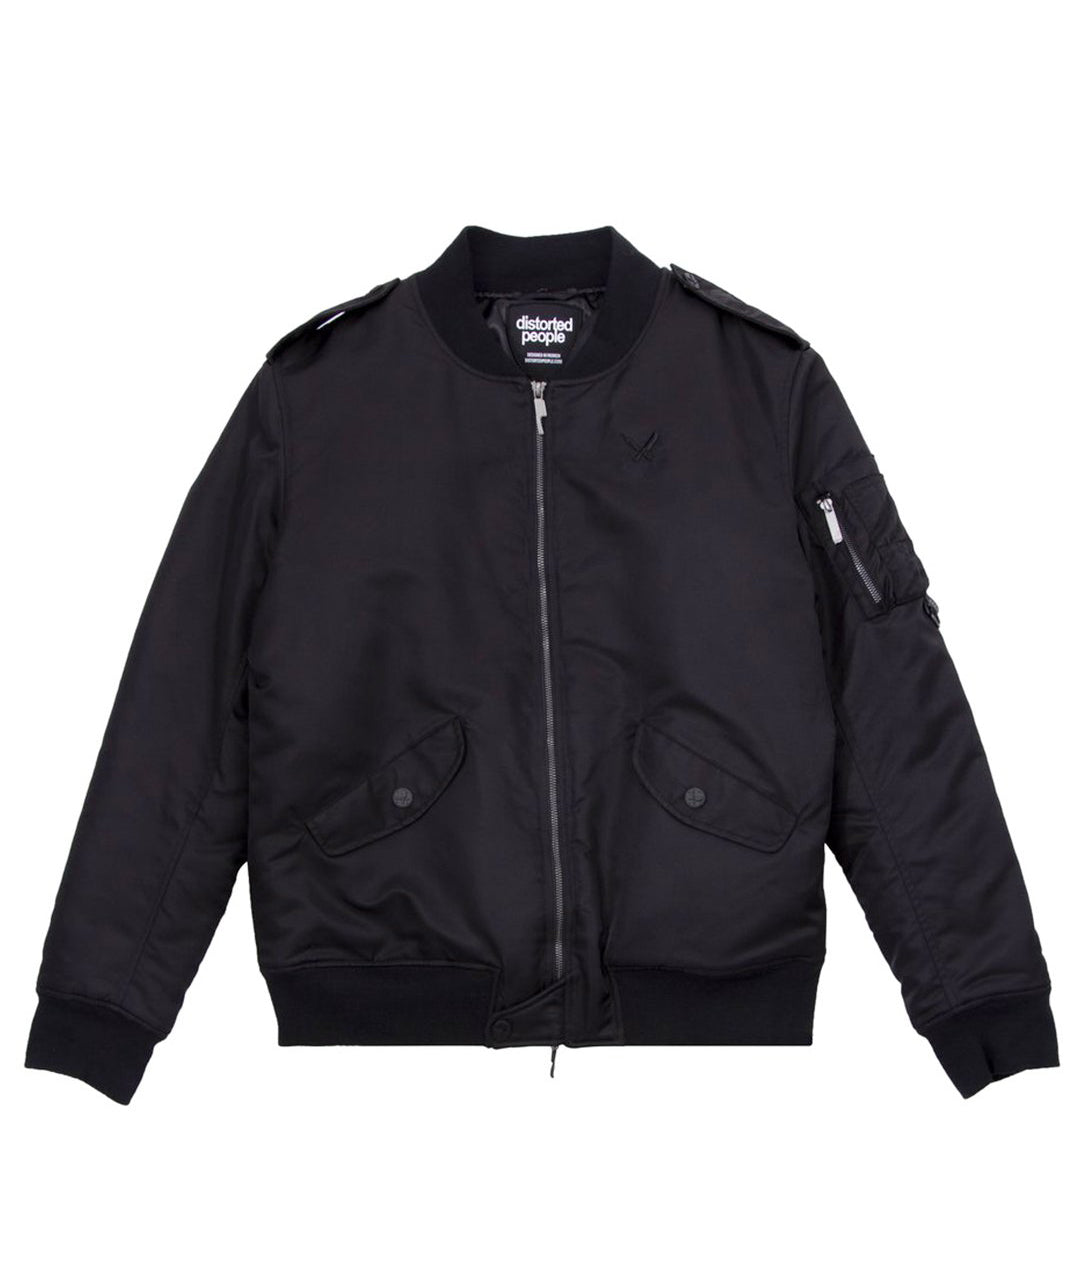 distorted people - Classic Heavy Bomber Jacket